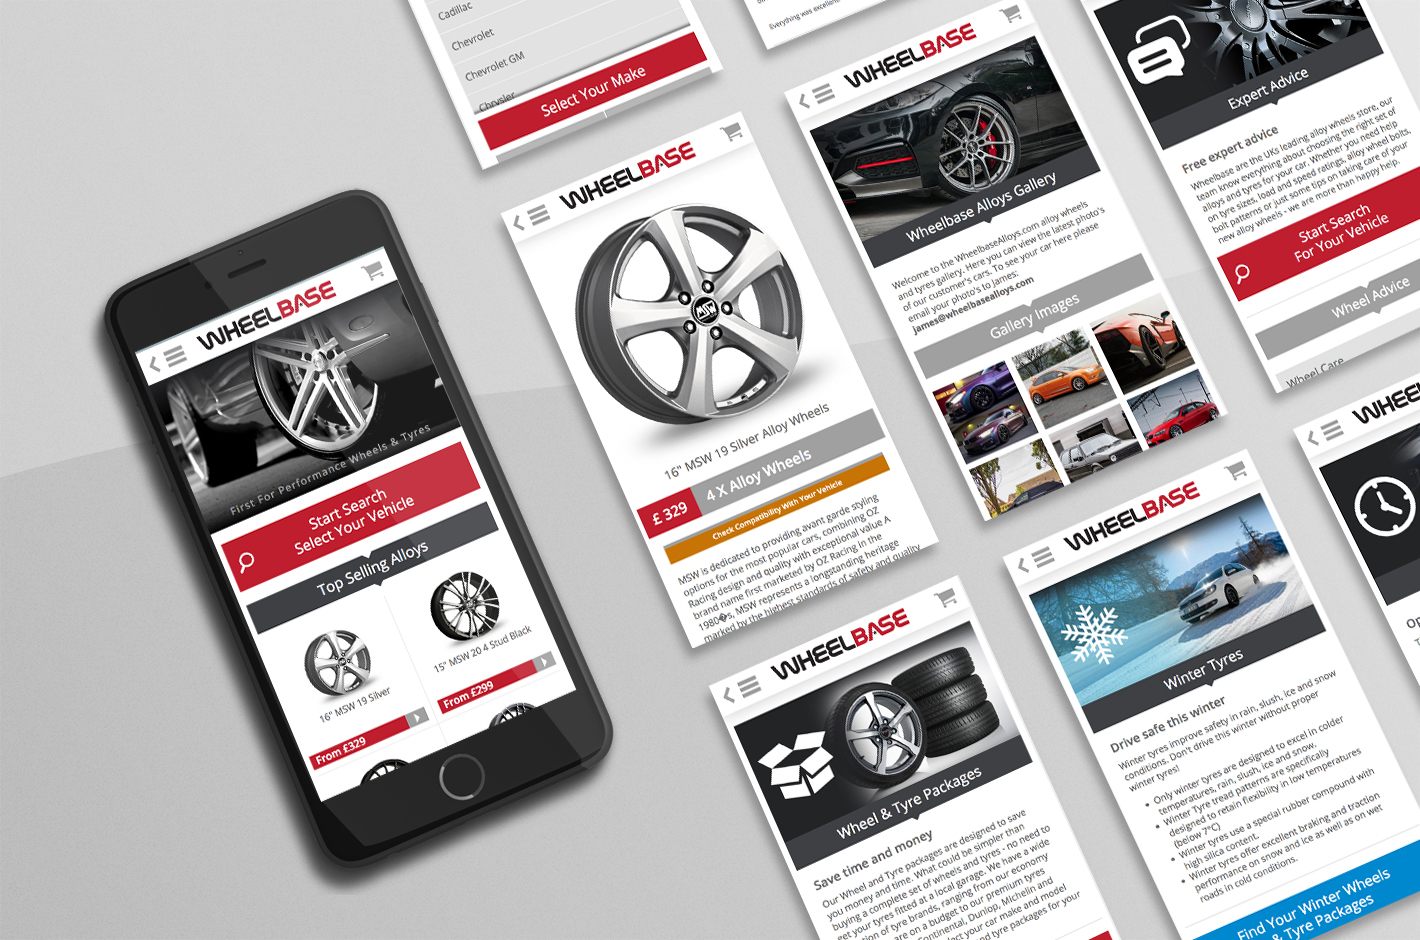 a mobile device with other mobile screens showing various pages from the responsive website design for wheelbase alloys